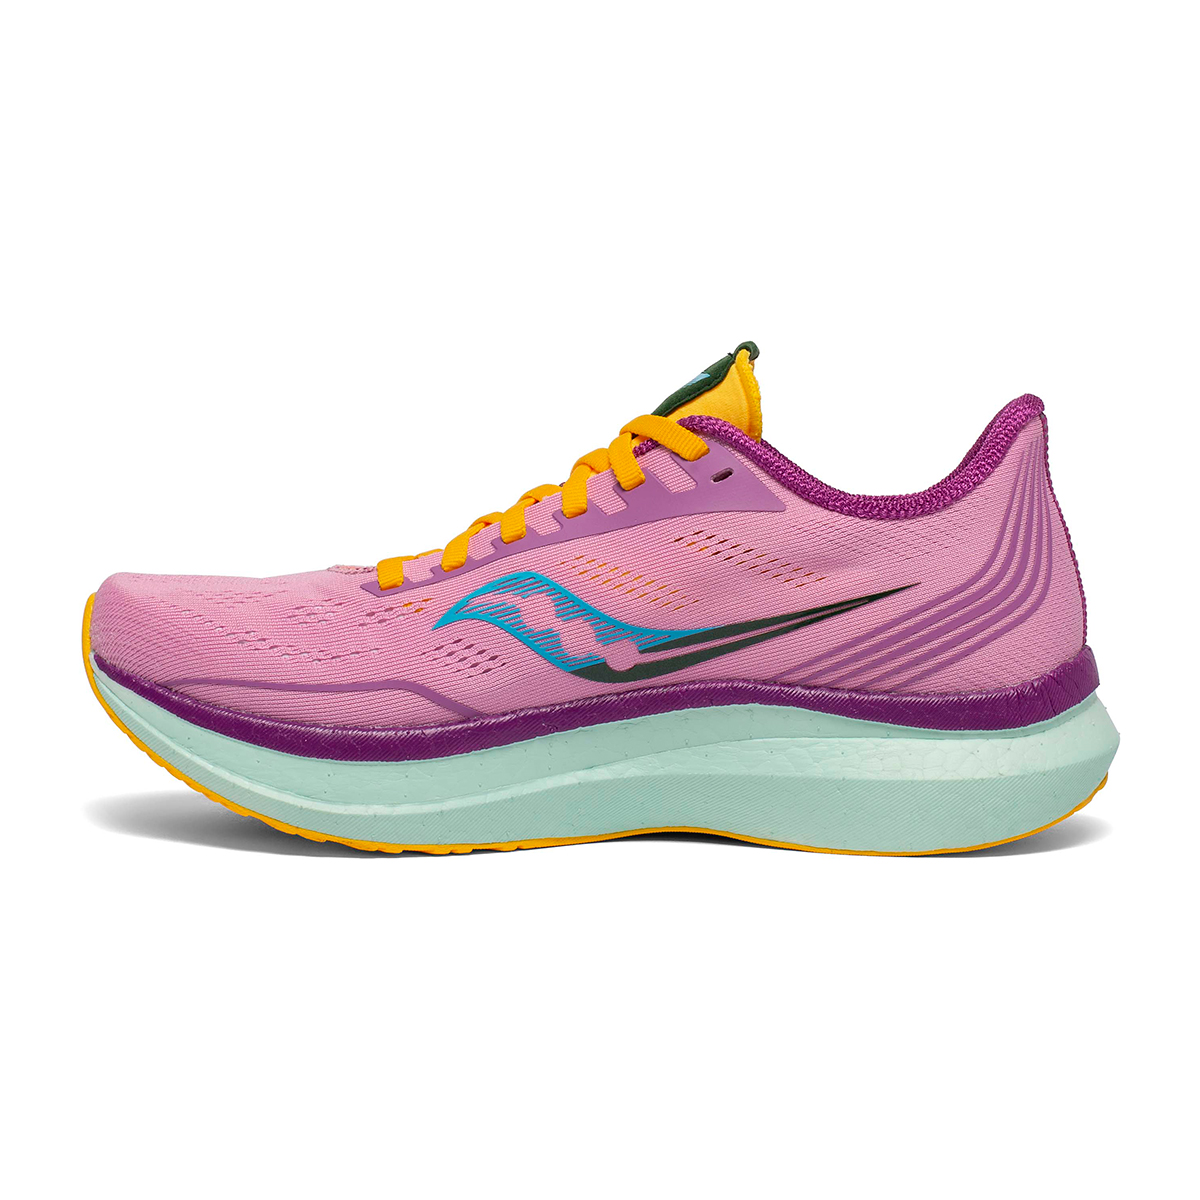 Women's Saucony Endorphin Pro Running Shoe - Color: Future/Pink - Size: 5 - Width: Regular, Future/Pink, large, image 2